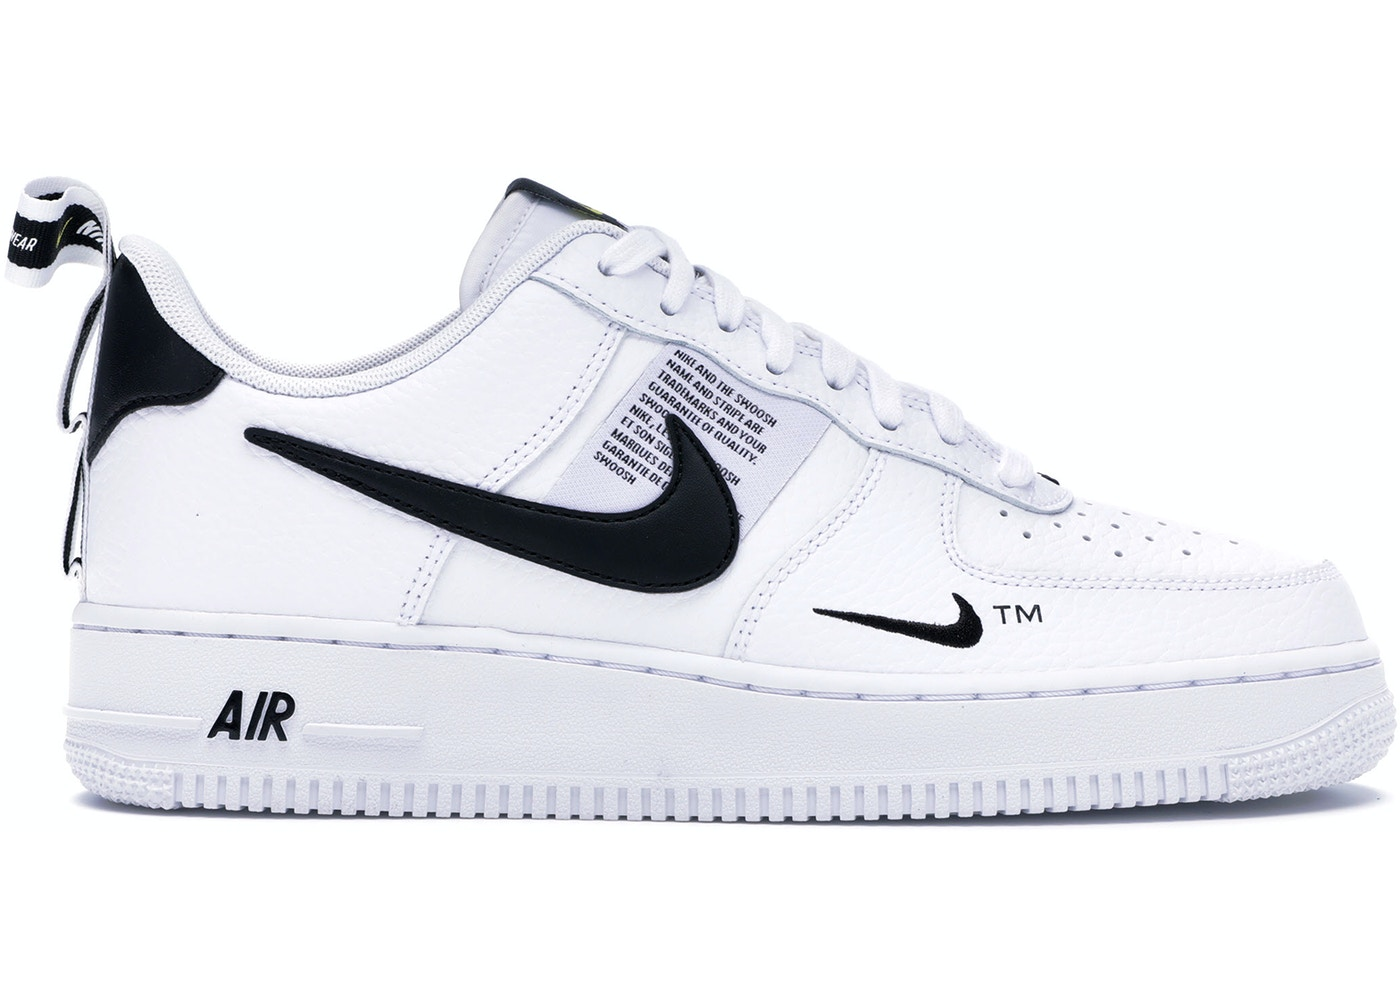 promo code 42ab5 f1d15 Buy Nike Air Force Shoes   Deadstock Sneakers